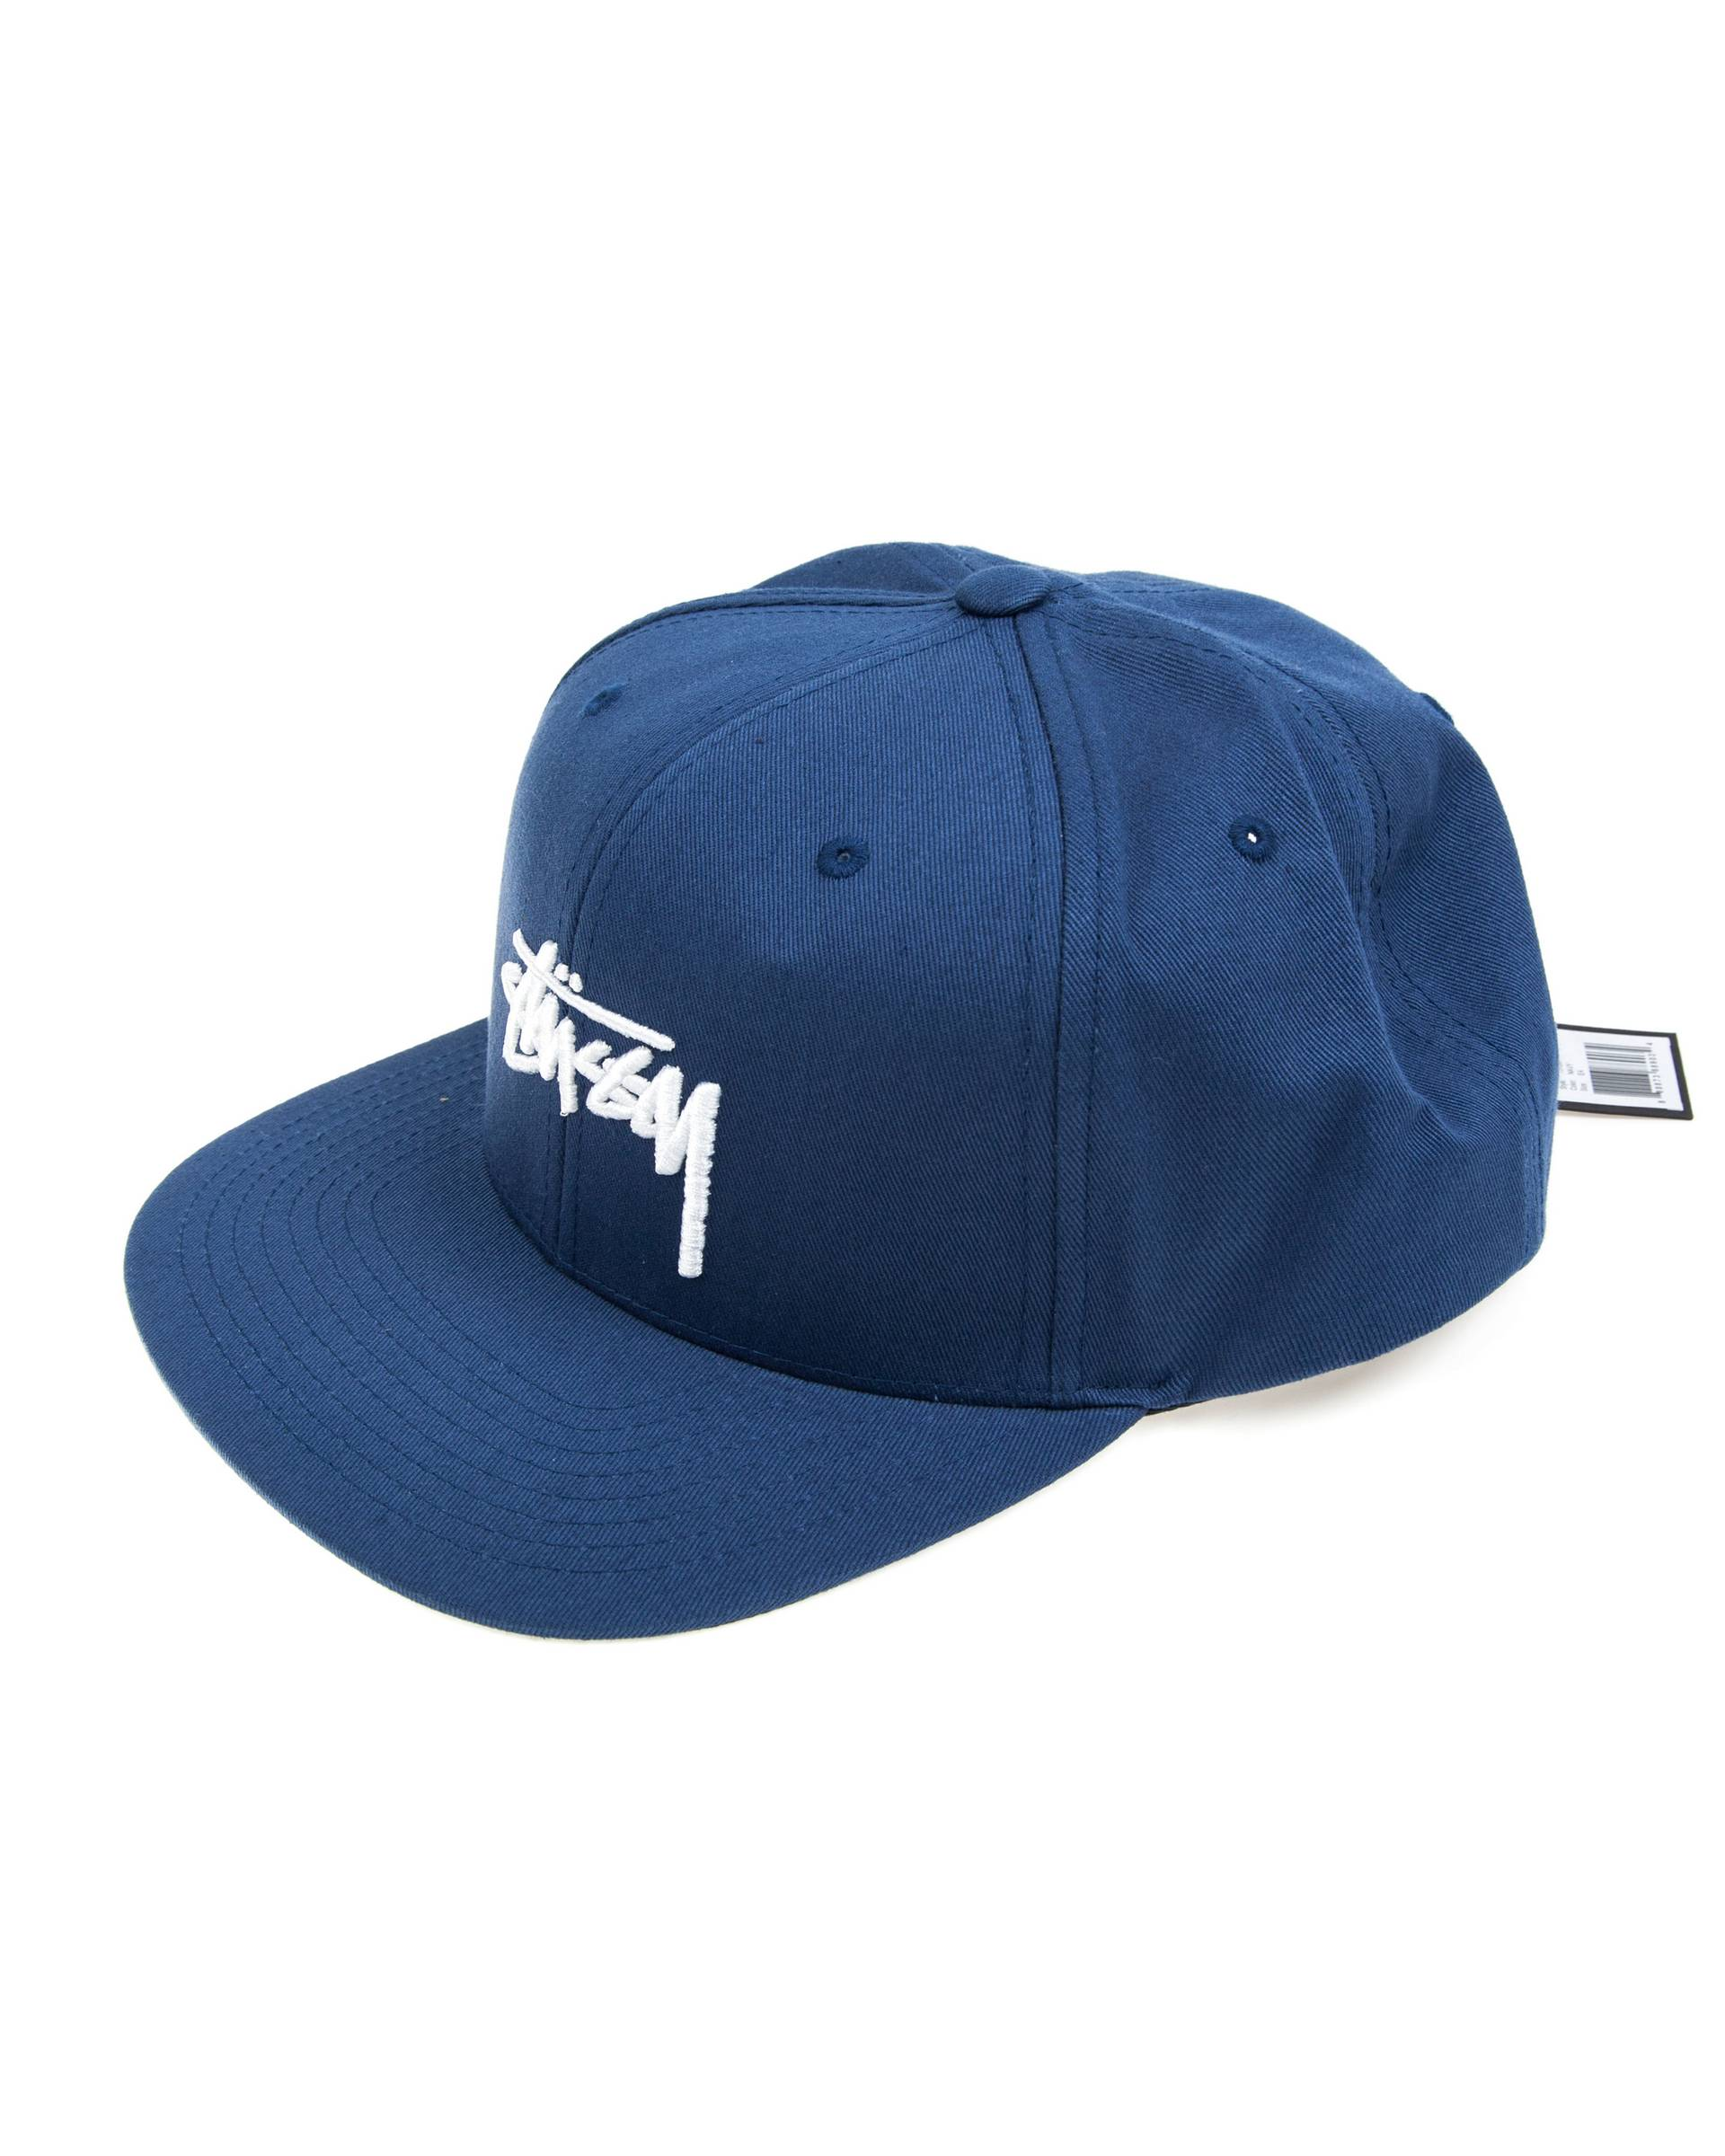 Кепка Stussy Stock Sp17 Blue